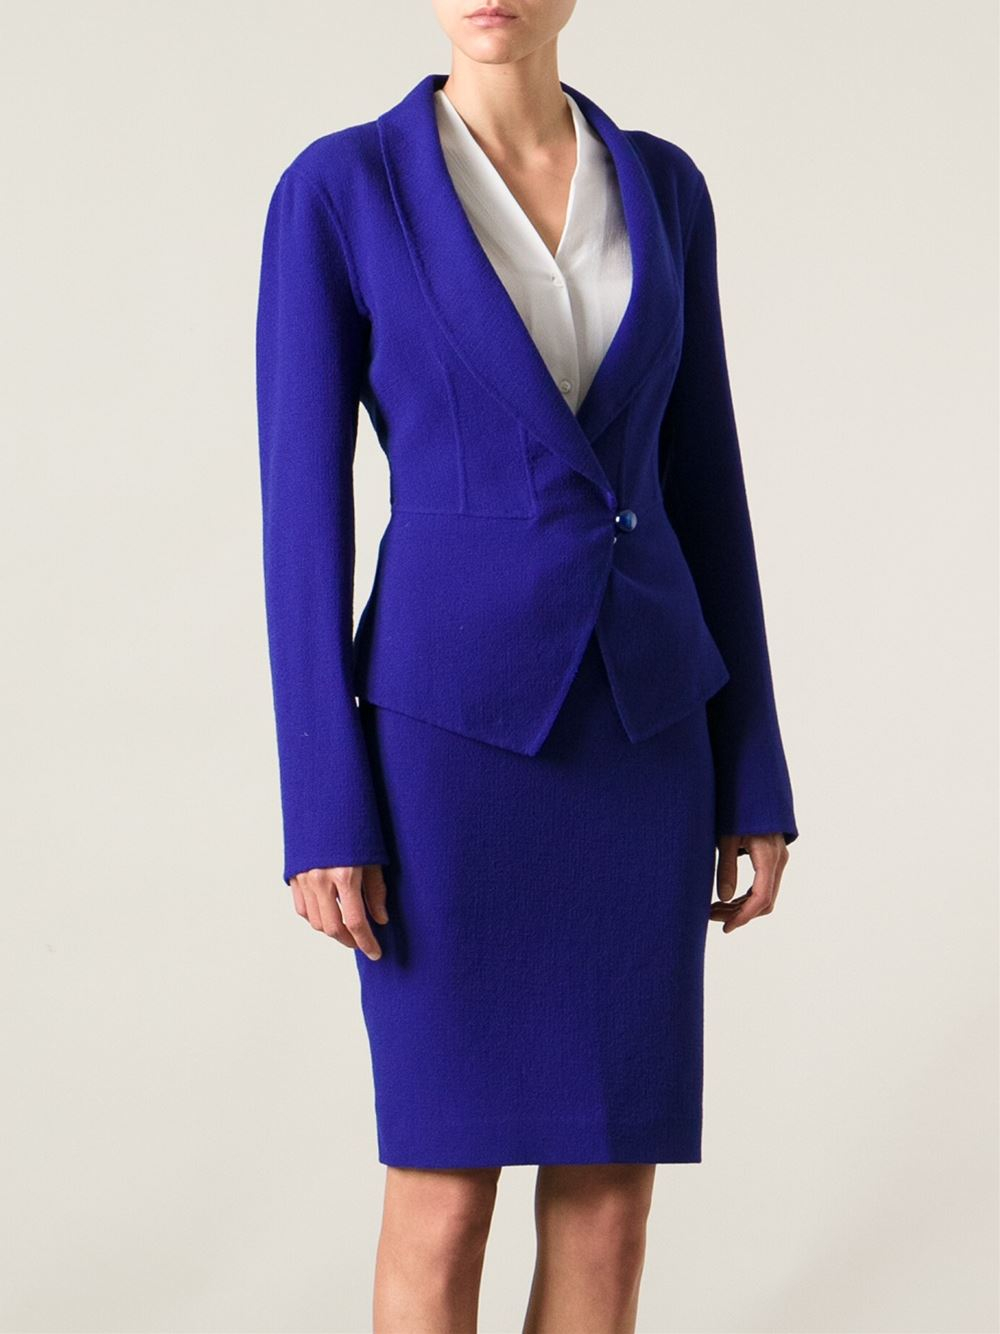 Armani Skirt Suit In Blue Lyst